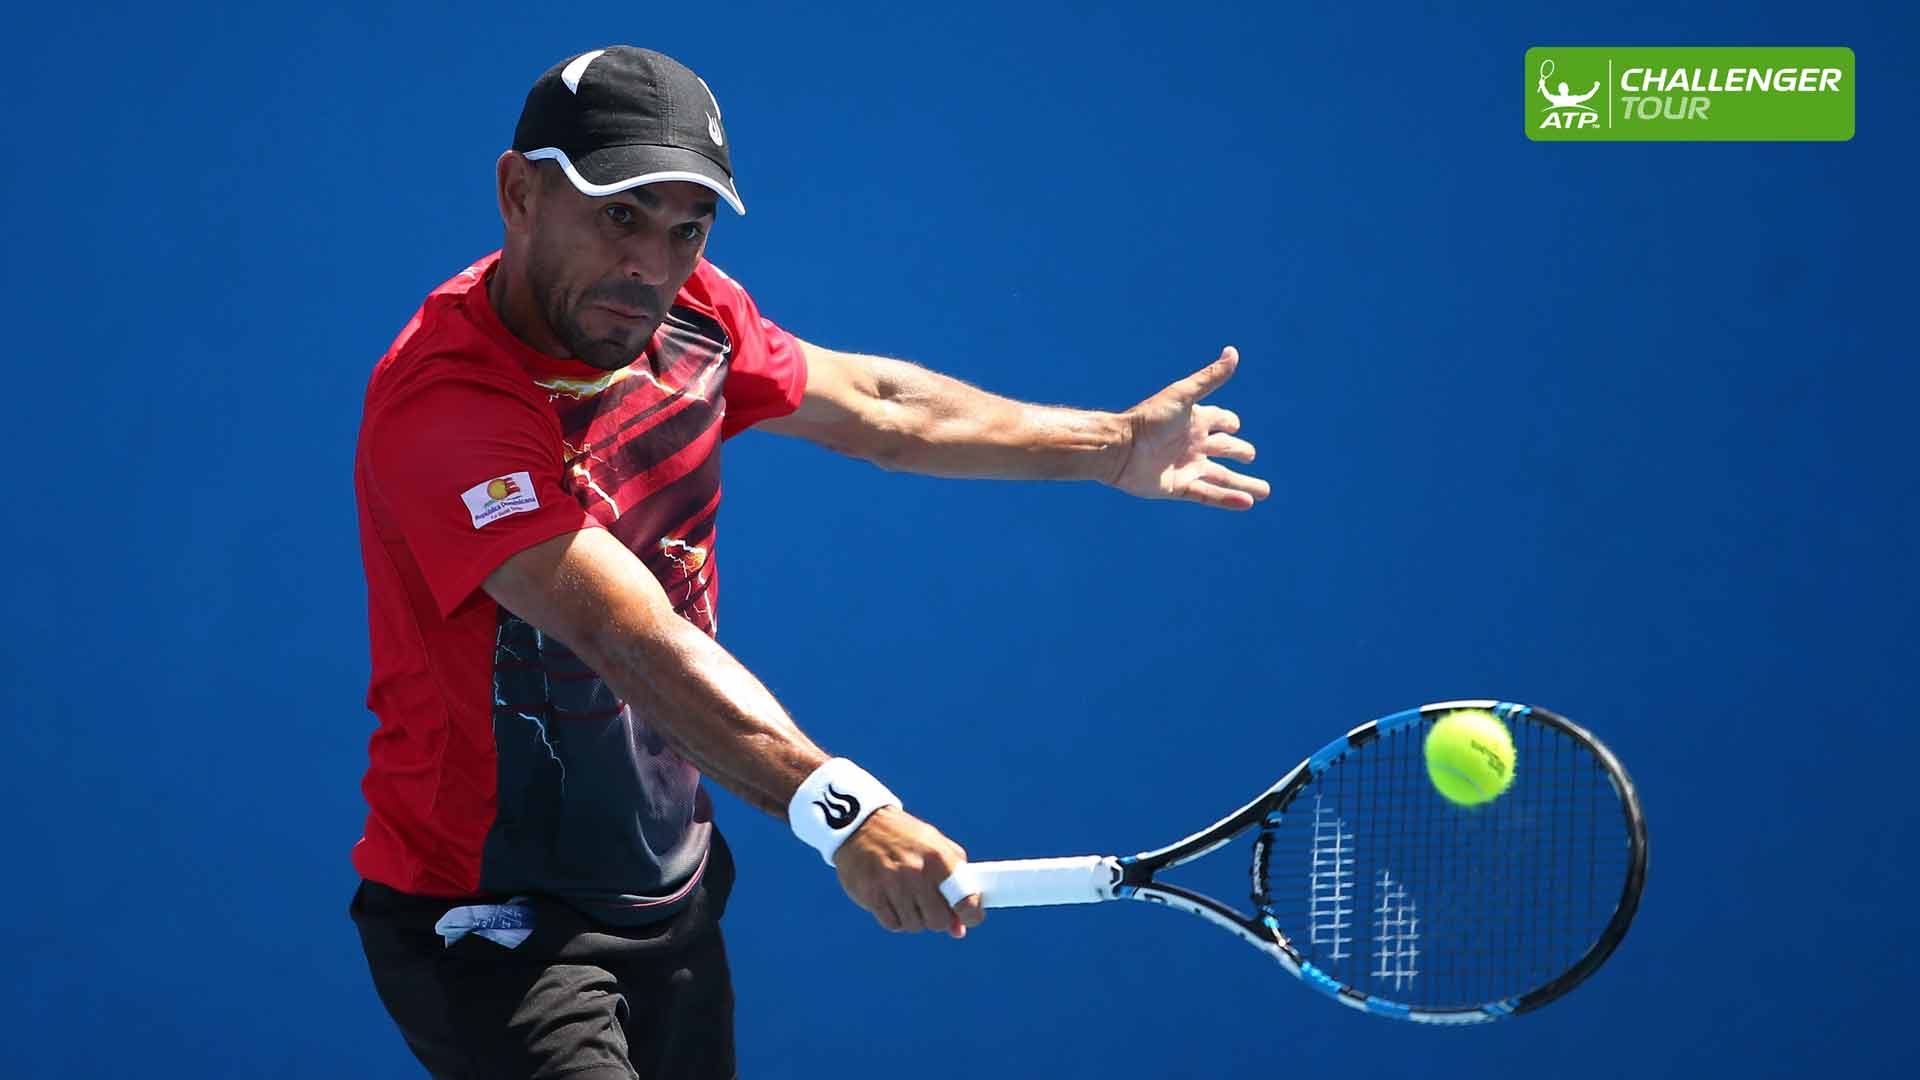 Victor Estrella Burgos is cruising through his matches at the ATP Challenger Tour event in Cali.